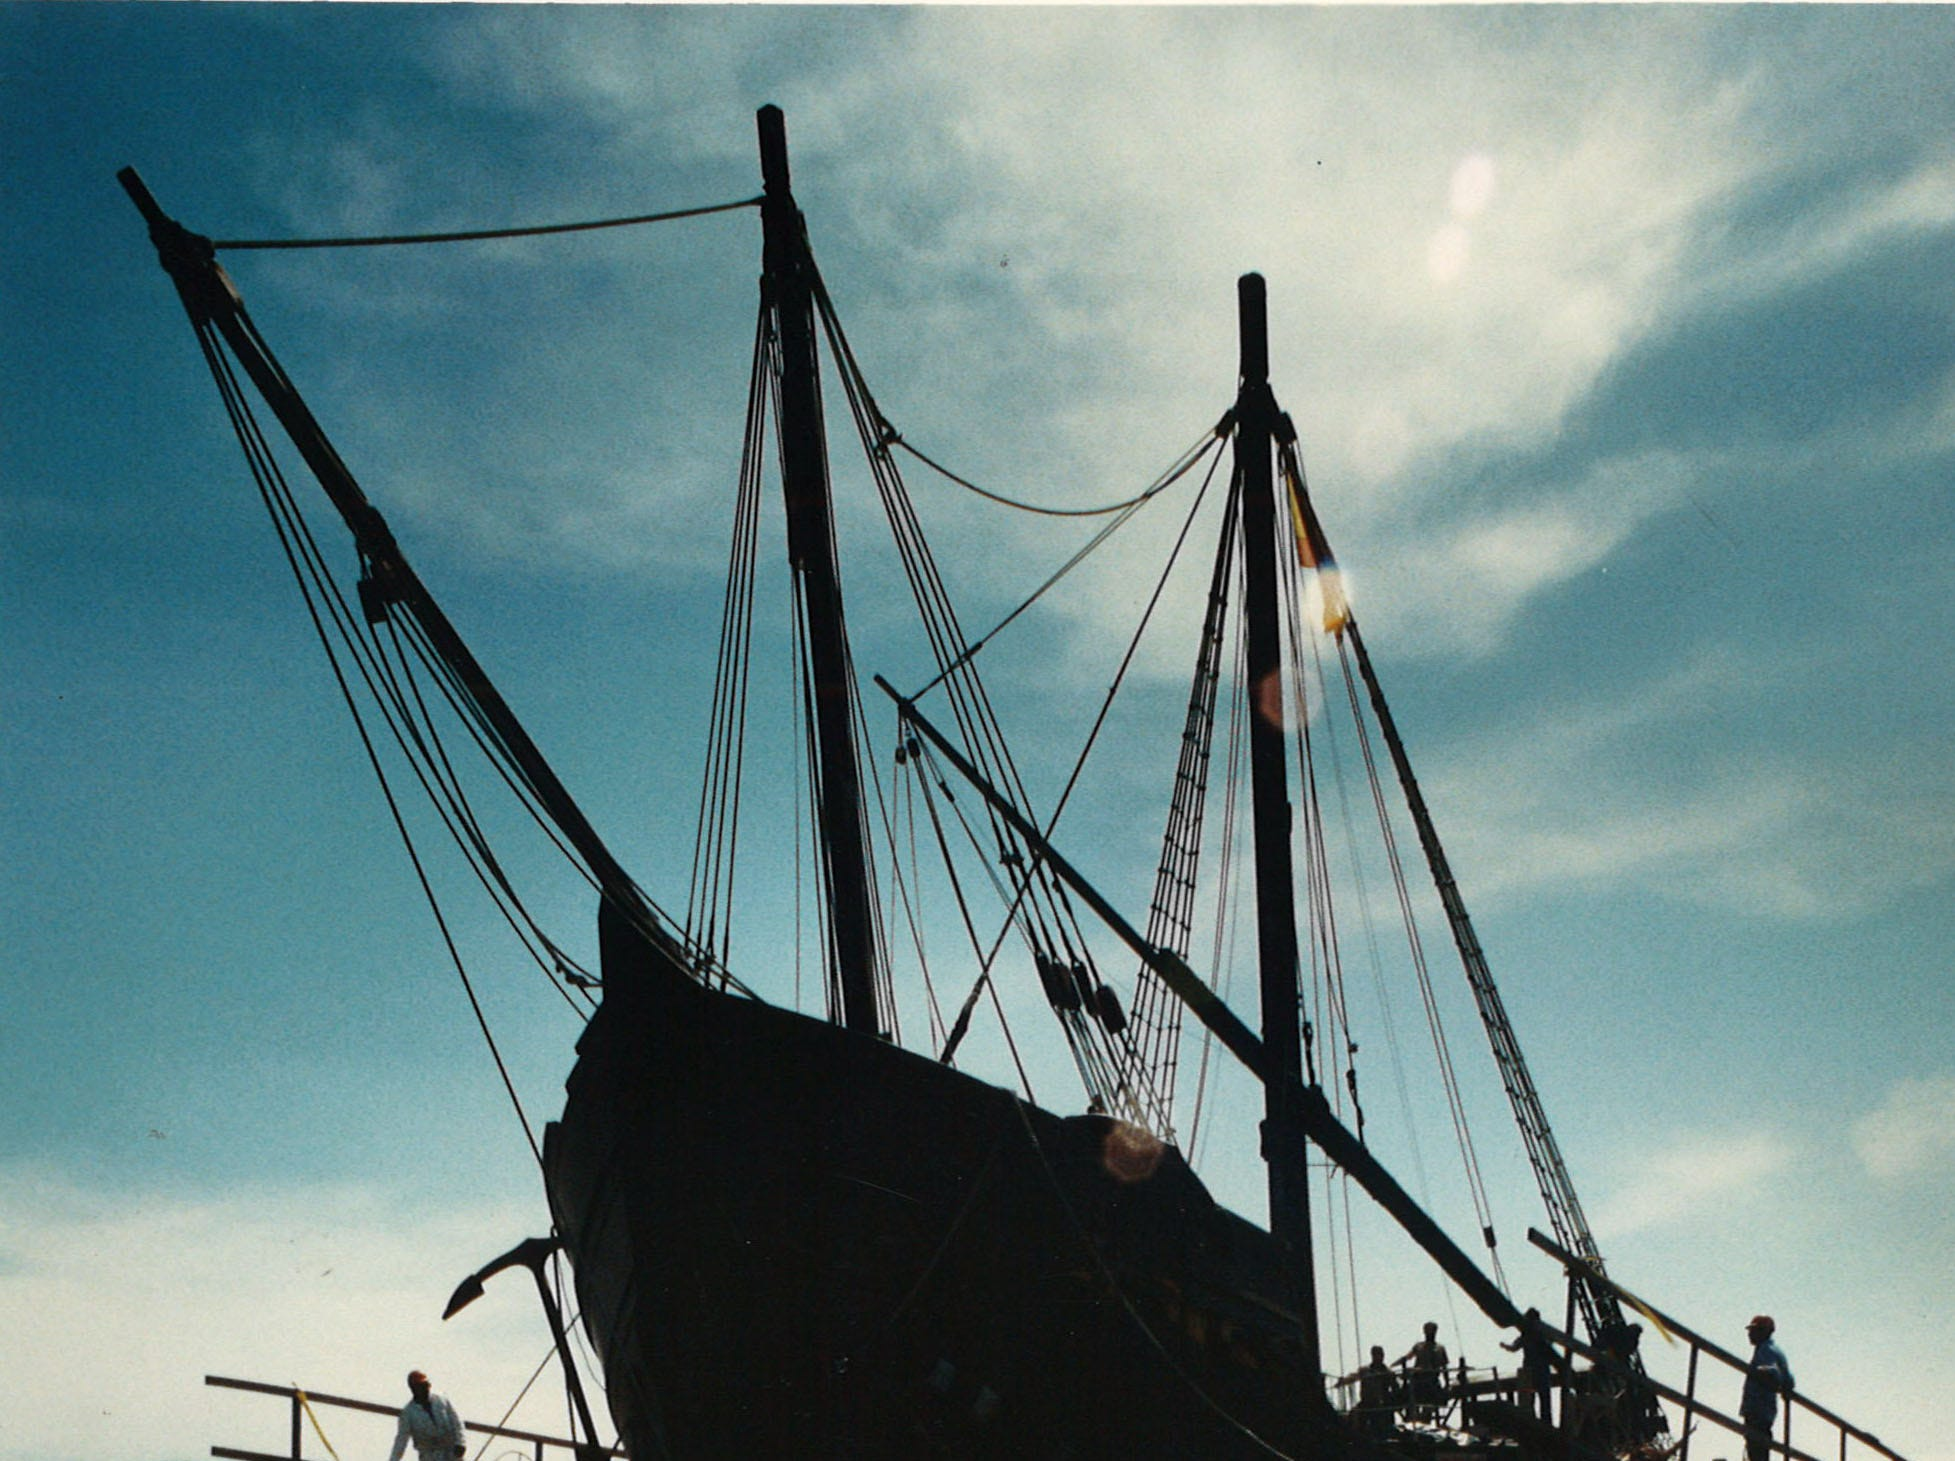 The Pinta, one of the three Columbus ships, prepared to be lifted into dry dock at Gulf King Shipyard in Aransas PAss on April 21, 1994. The ship was damaged by a barge while docked in Corpus Christi's inner harbor.